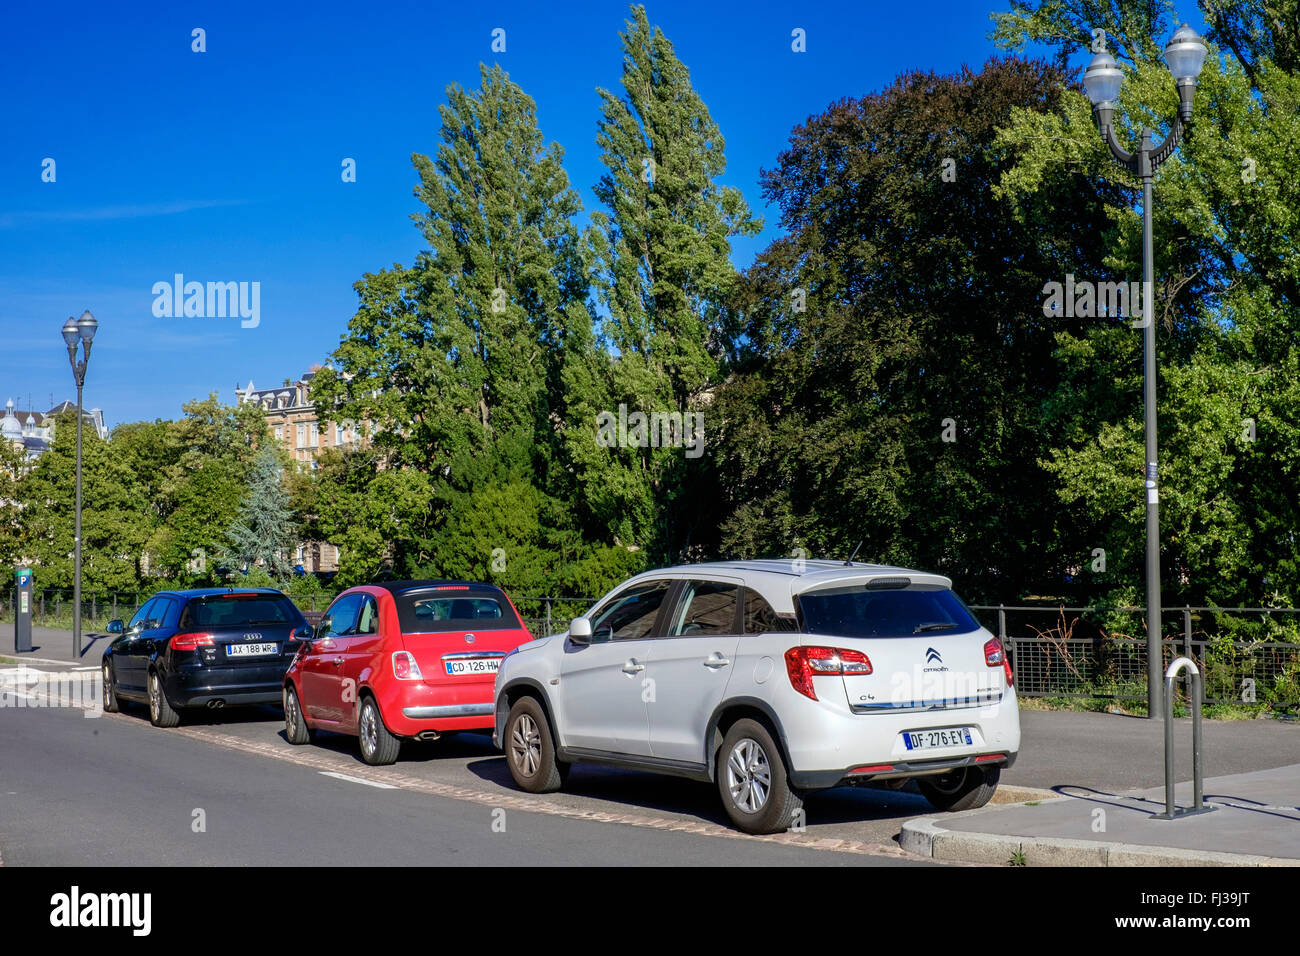 3 cars parked along pavement, Strasbourg, Alsace, France, Europe - Stock Image